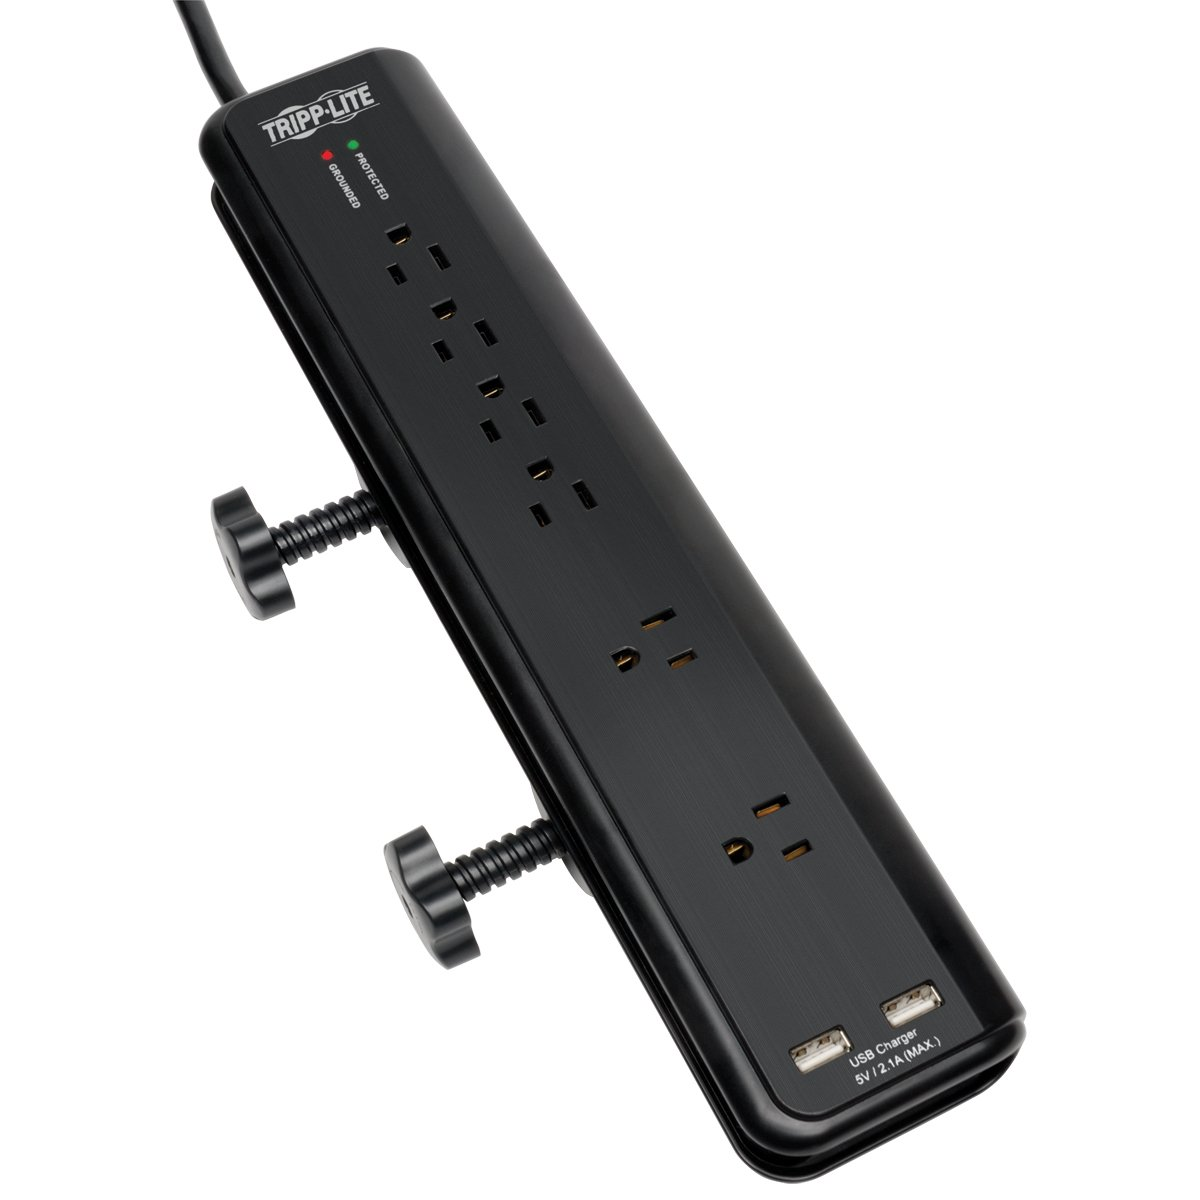 Tripp Lite 6 Outlet Surge Protector Power Strip Clamp Mount 6ft Cord 2100 Joules Dual USB & INSURANCE (TLP606DMUSB)